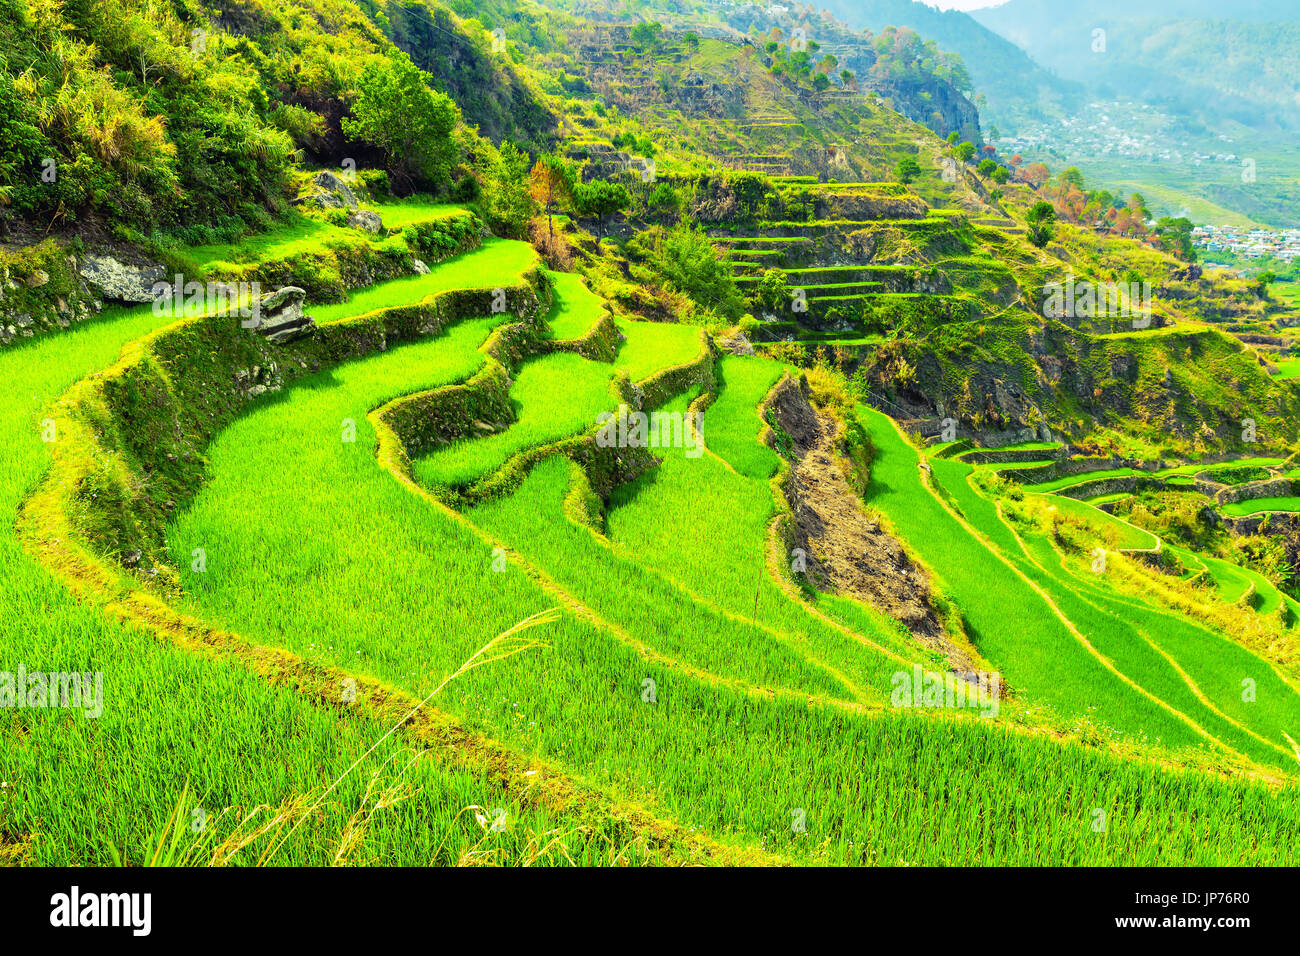 Vietnam Rice Paddy Field. Grow, harvest / Nature landscape green Rice Terraces on background amazing tropical nature and scenery mountain on horizon - Stock Image